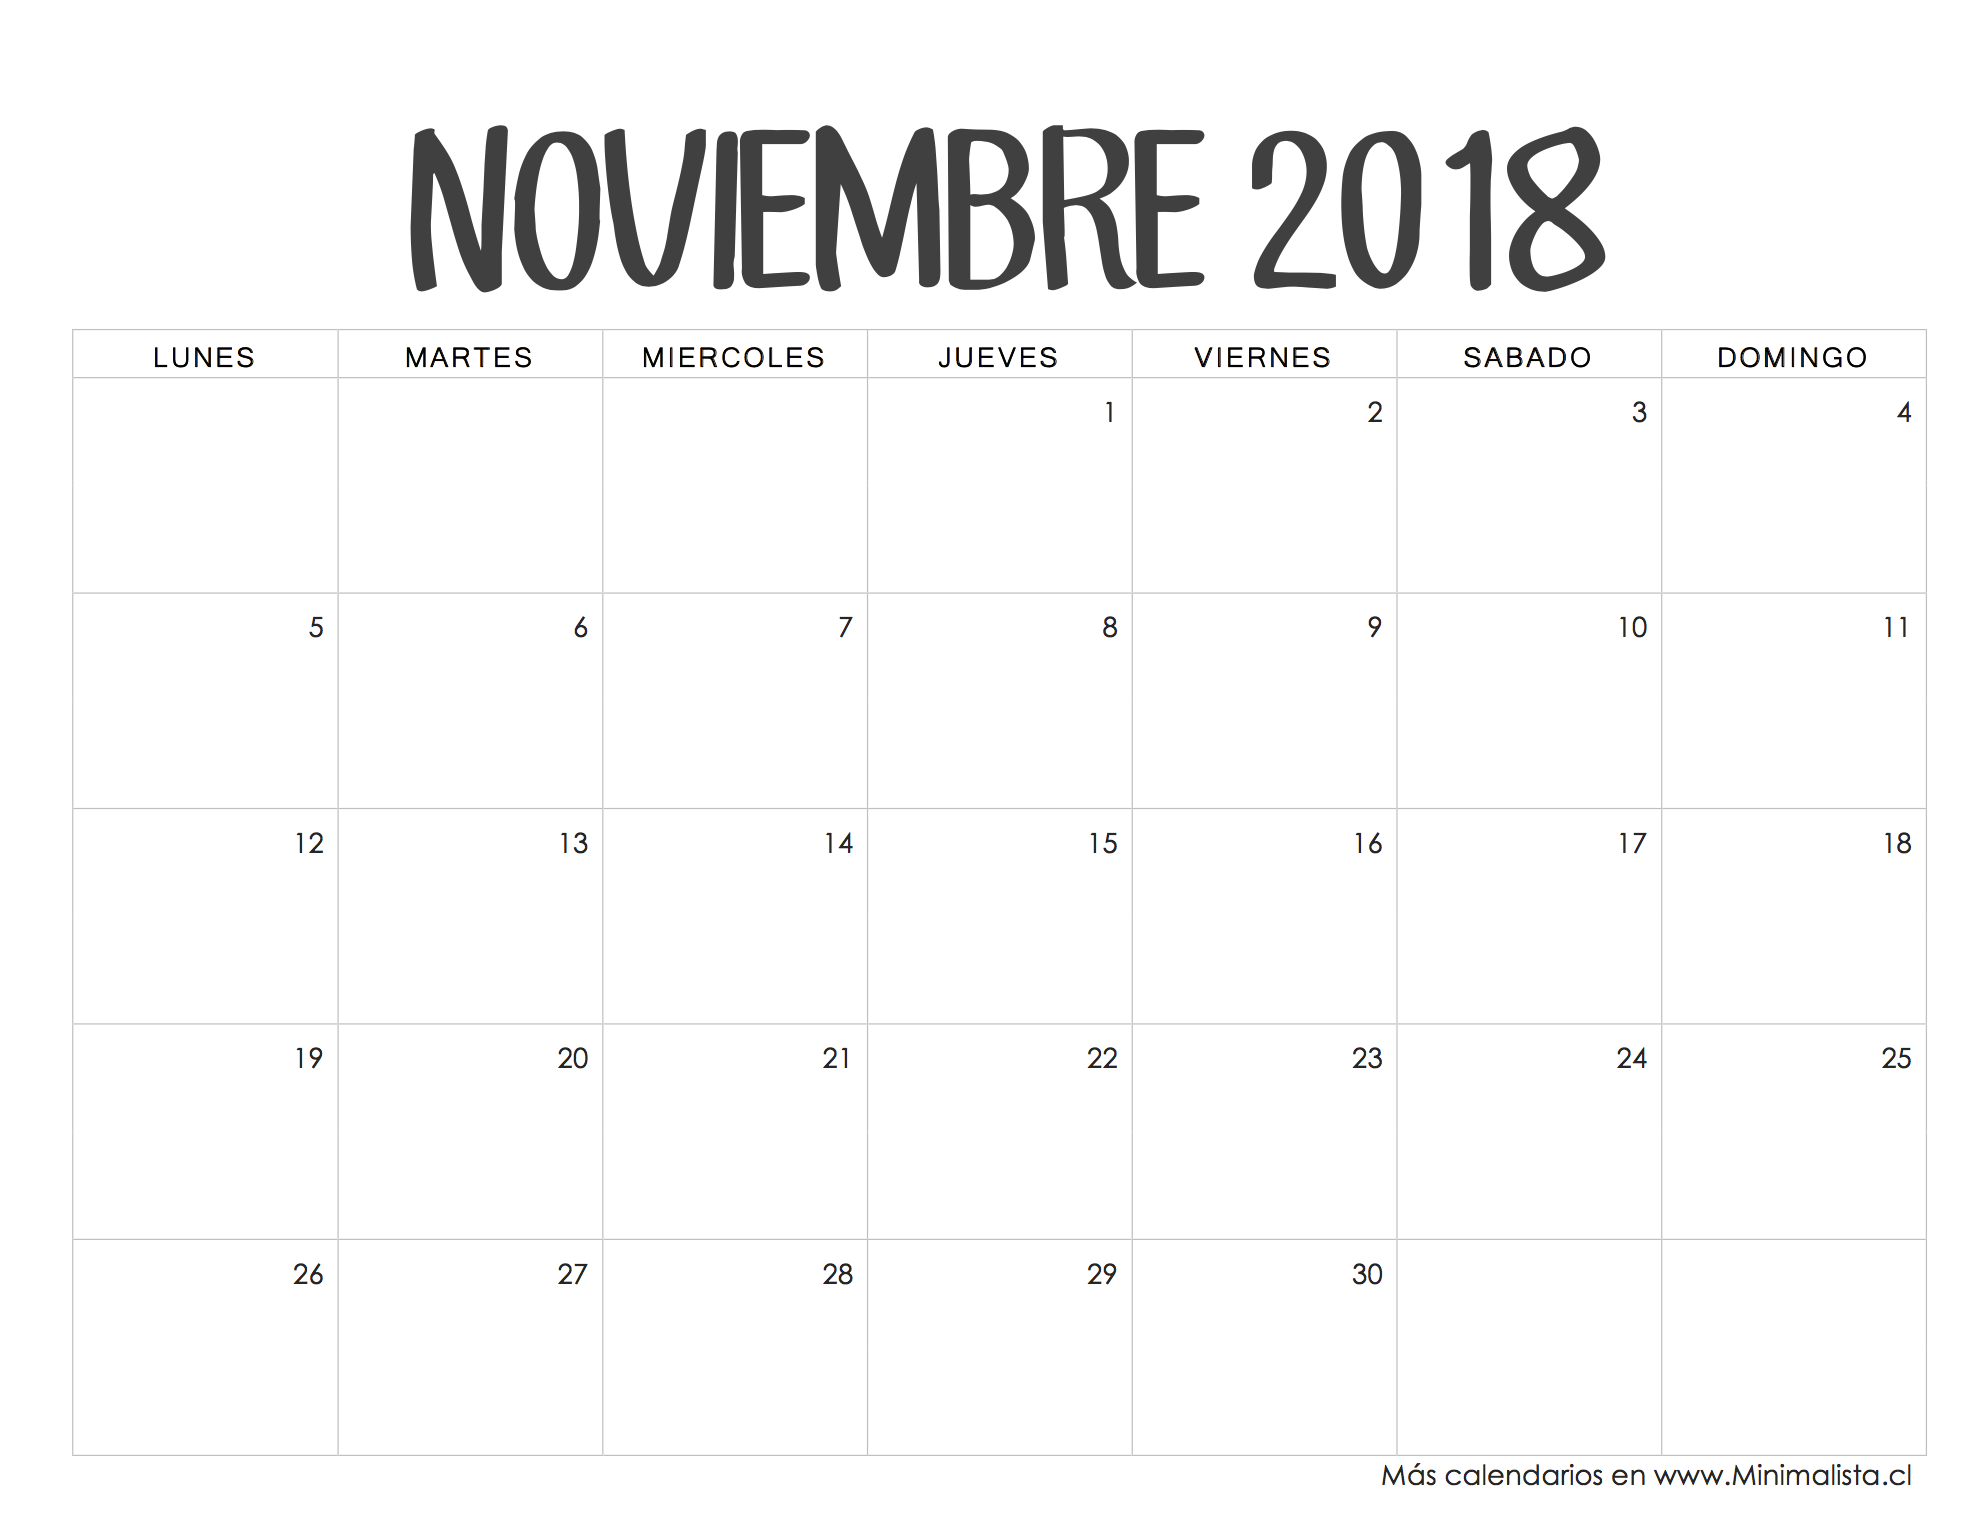 Calendario Escolar Madrid 202018.Calendario Noviembre 2018 A Dibujar Calendario 2018 Para